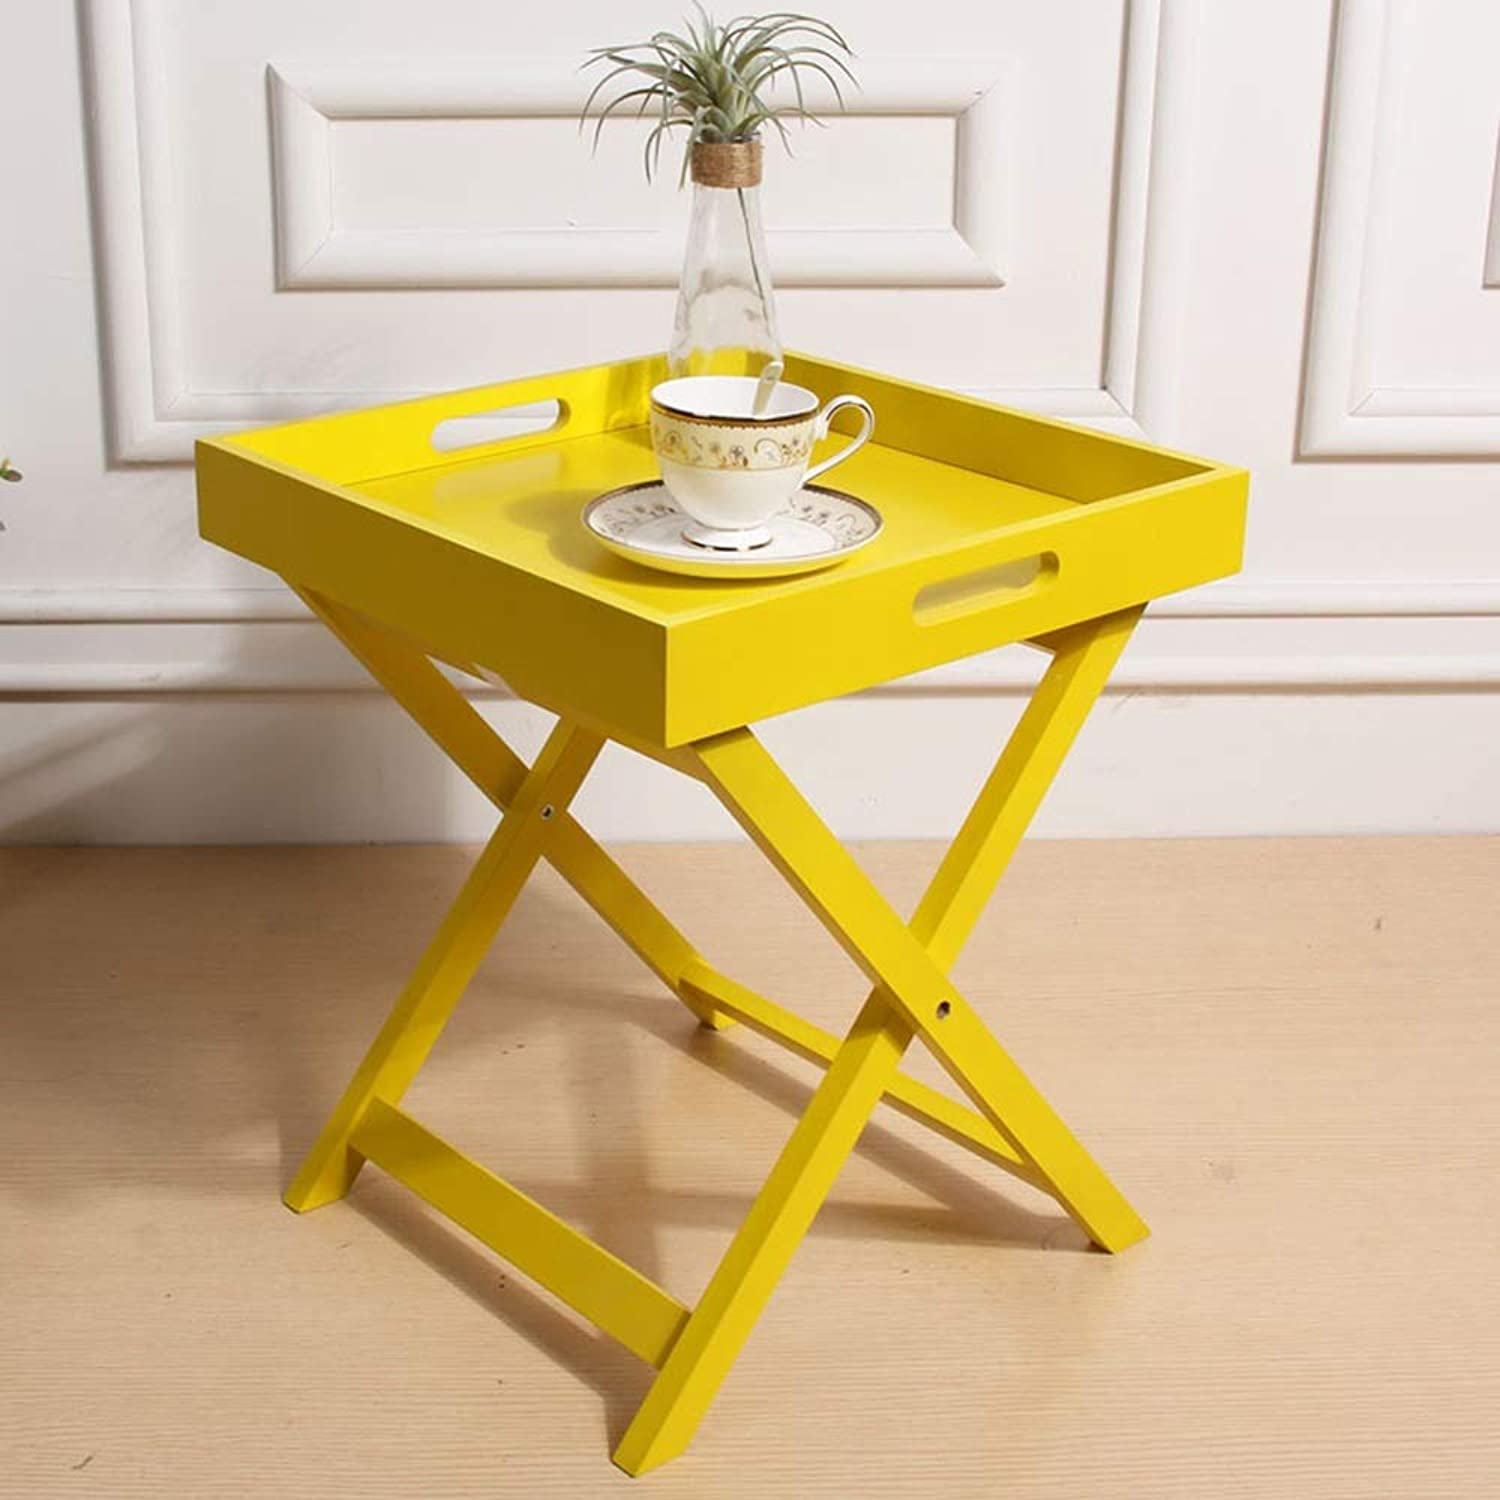 Zhediezhuo Sofa Side Table Mini Mobile Small Coffee Table Coffee Table Bedside Folding Table Folding Table (color   Yellow)